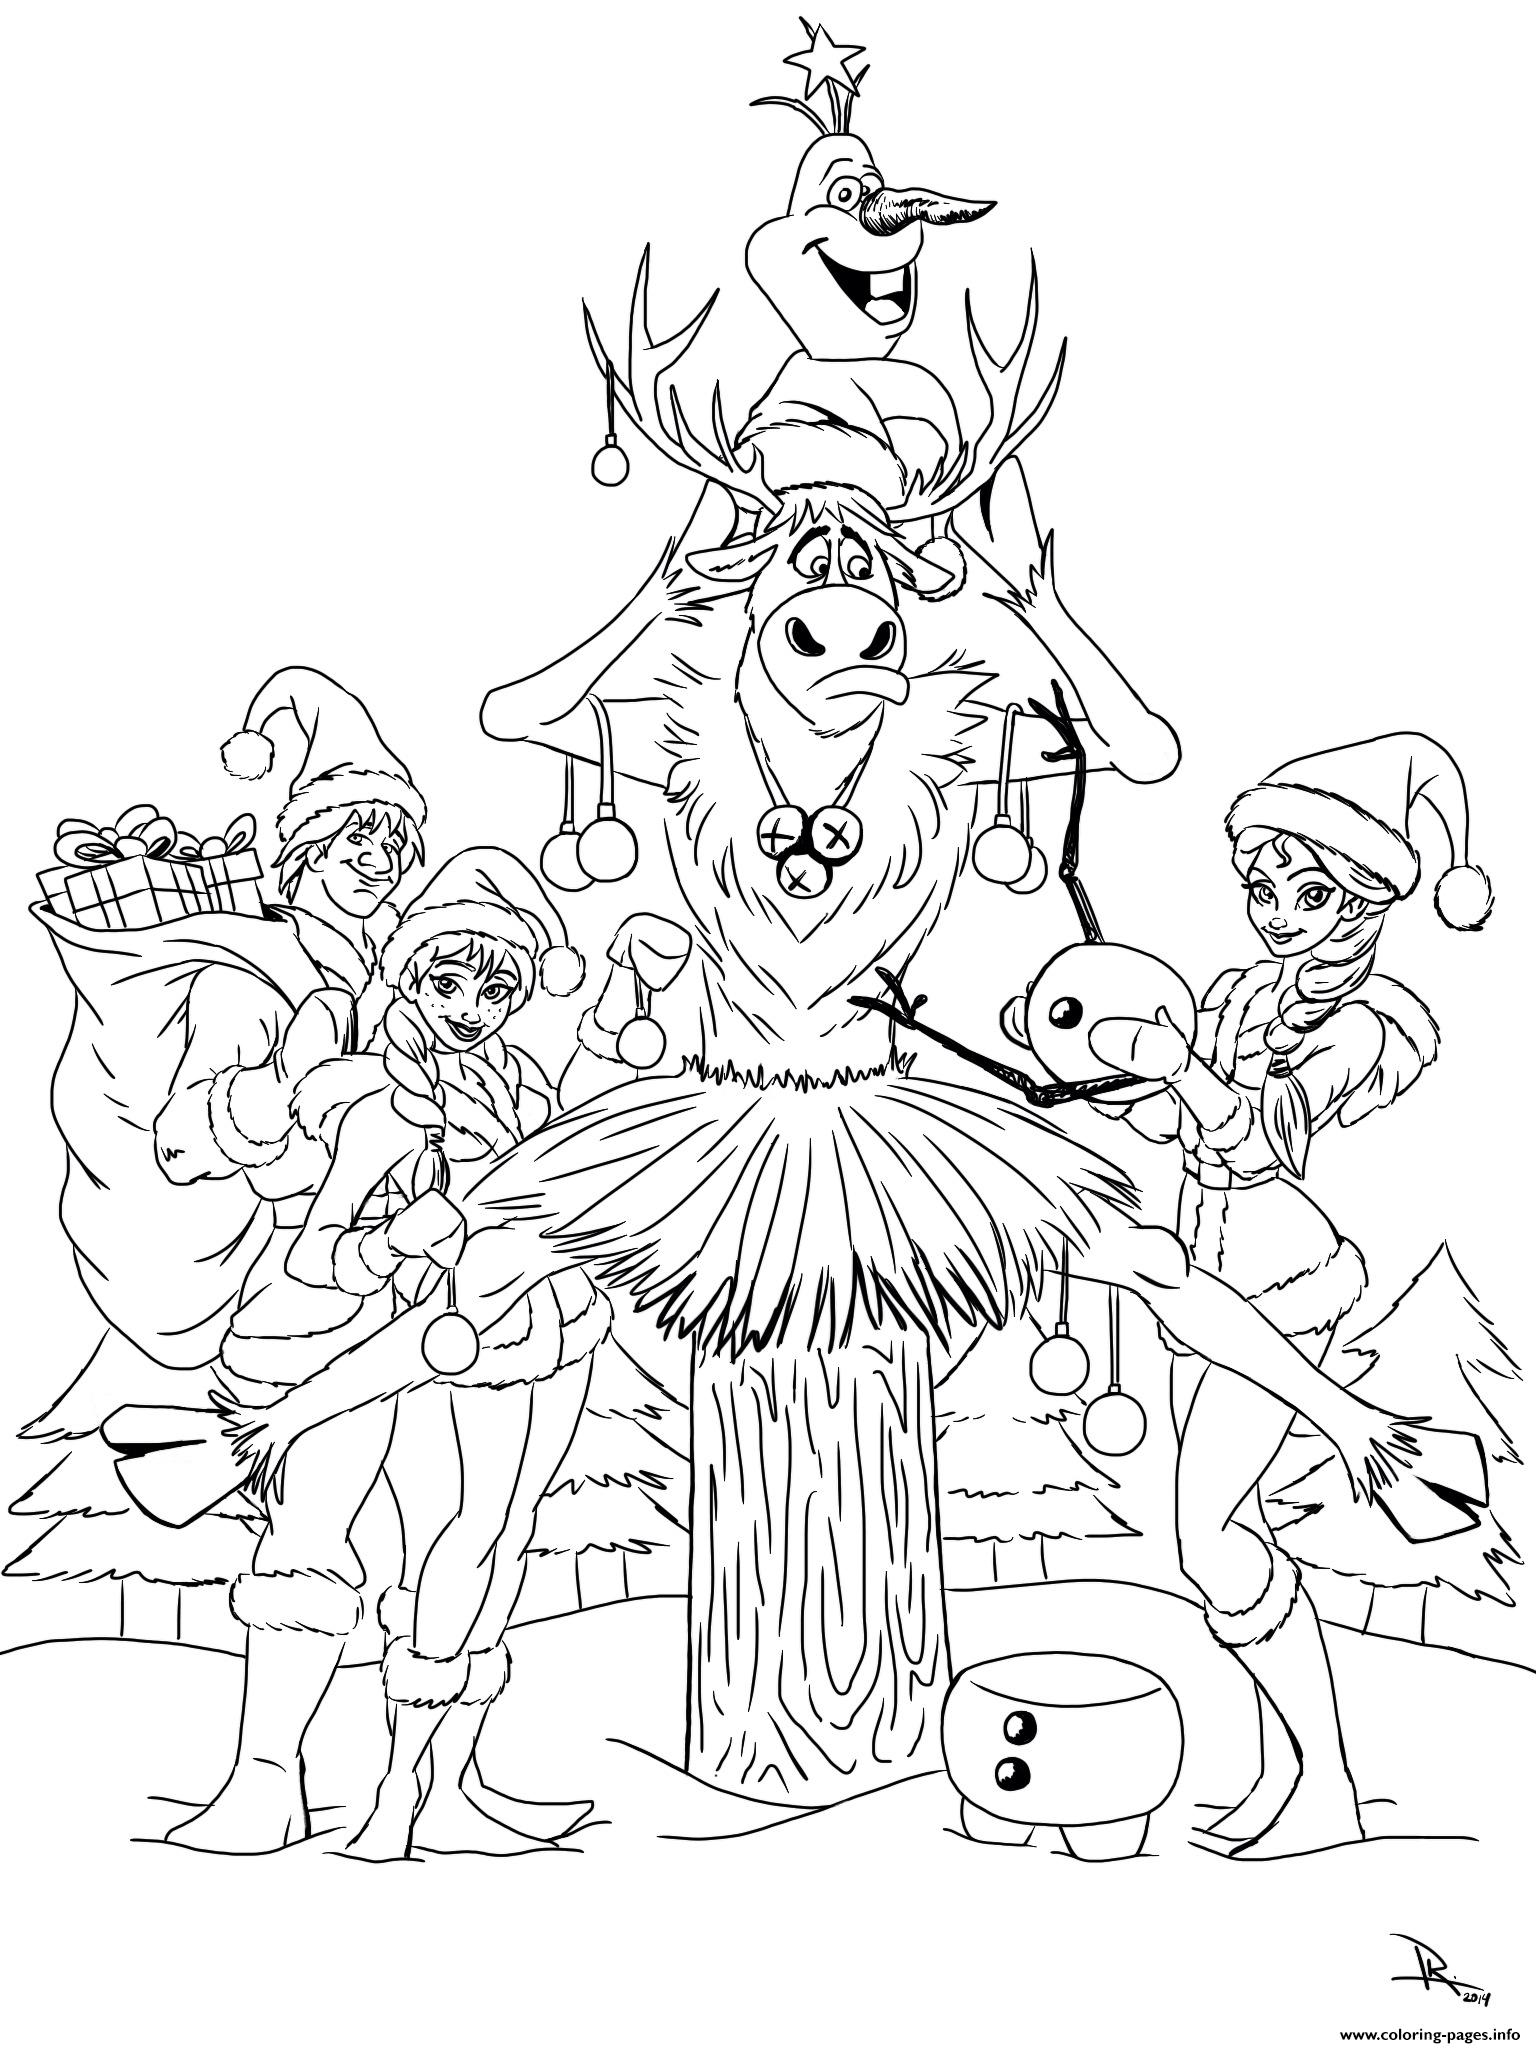 frozen character coloring pages - photo#34